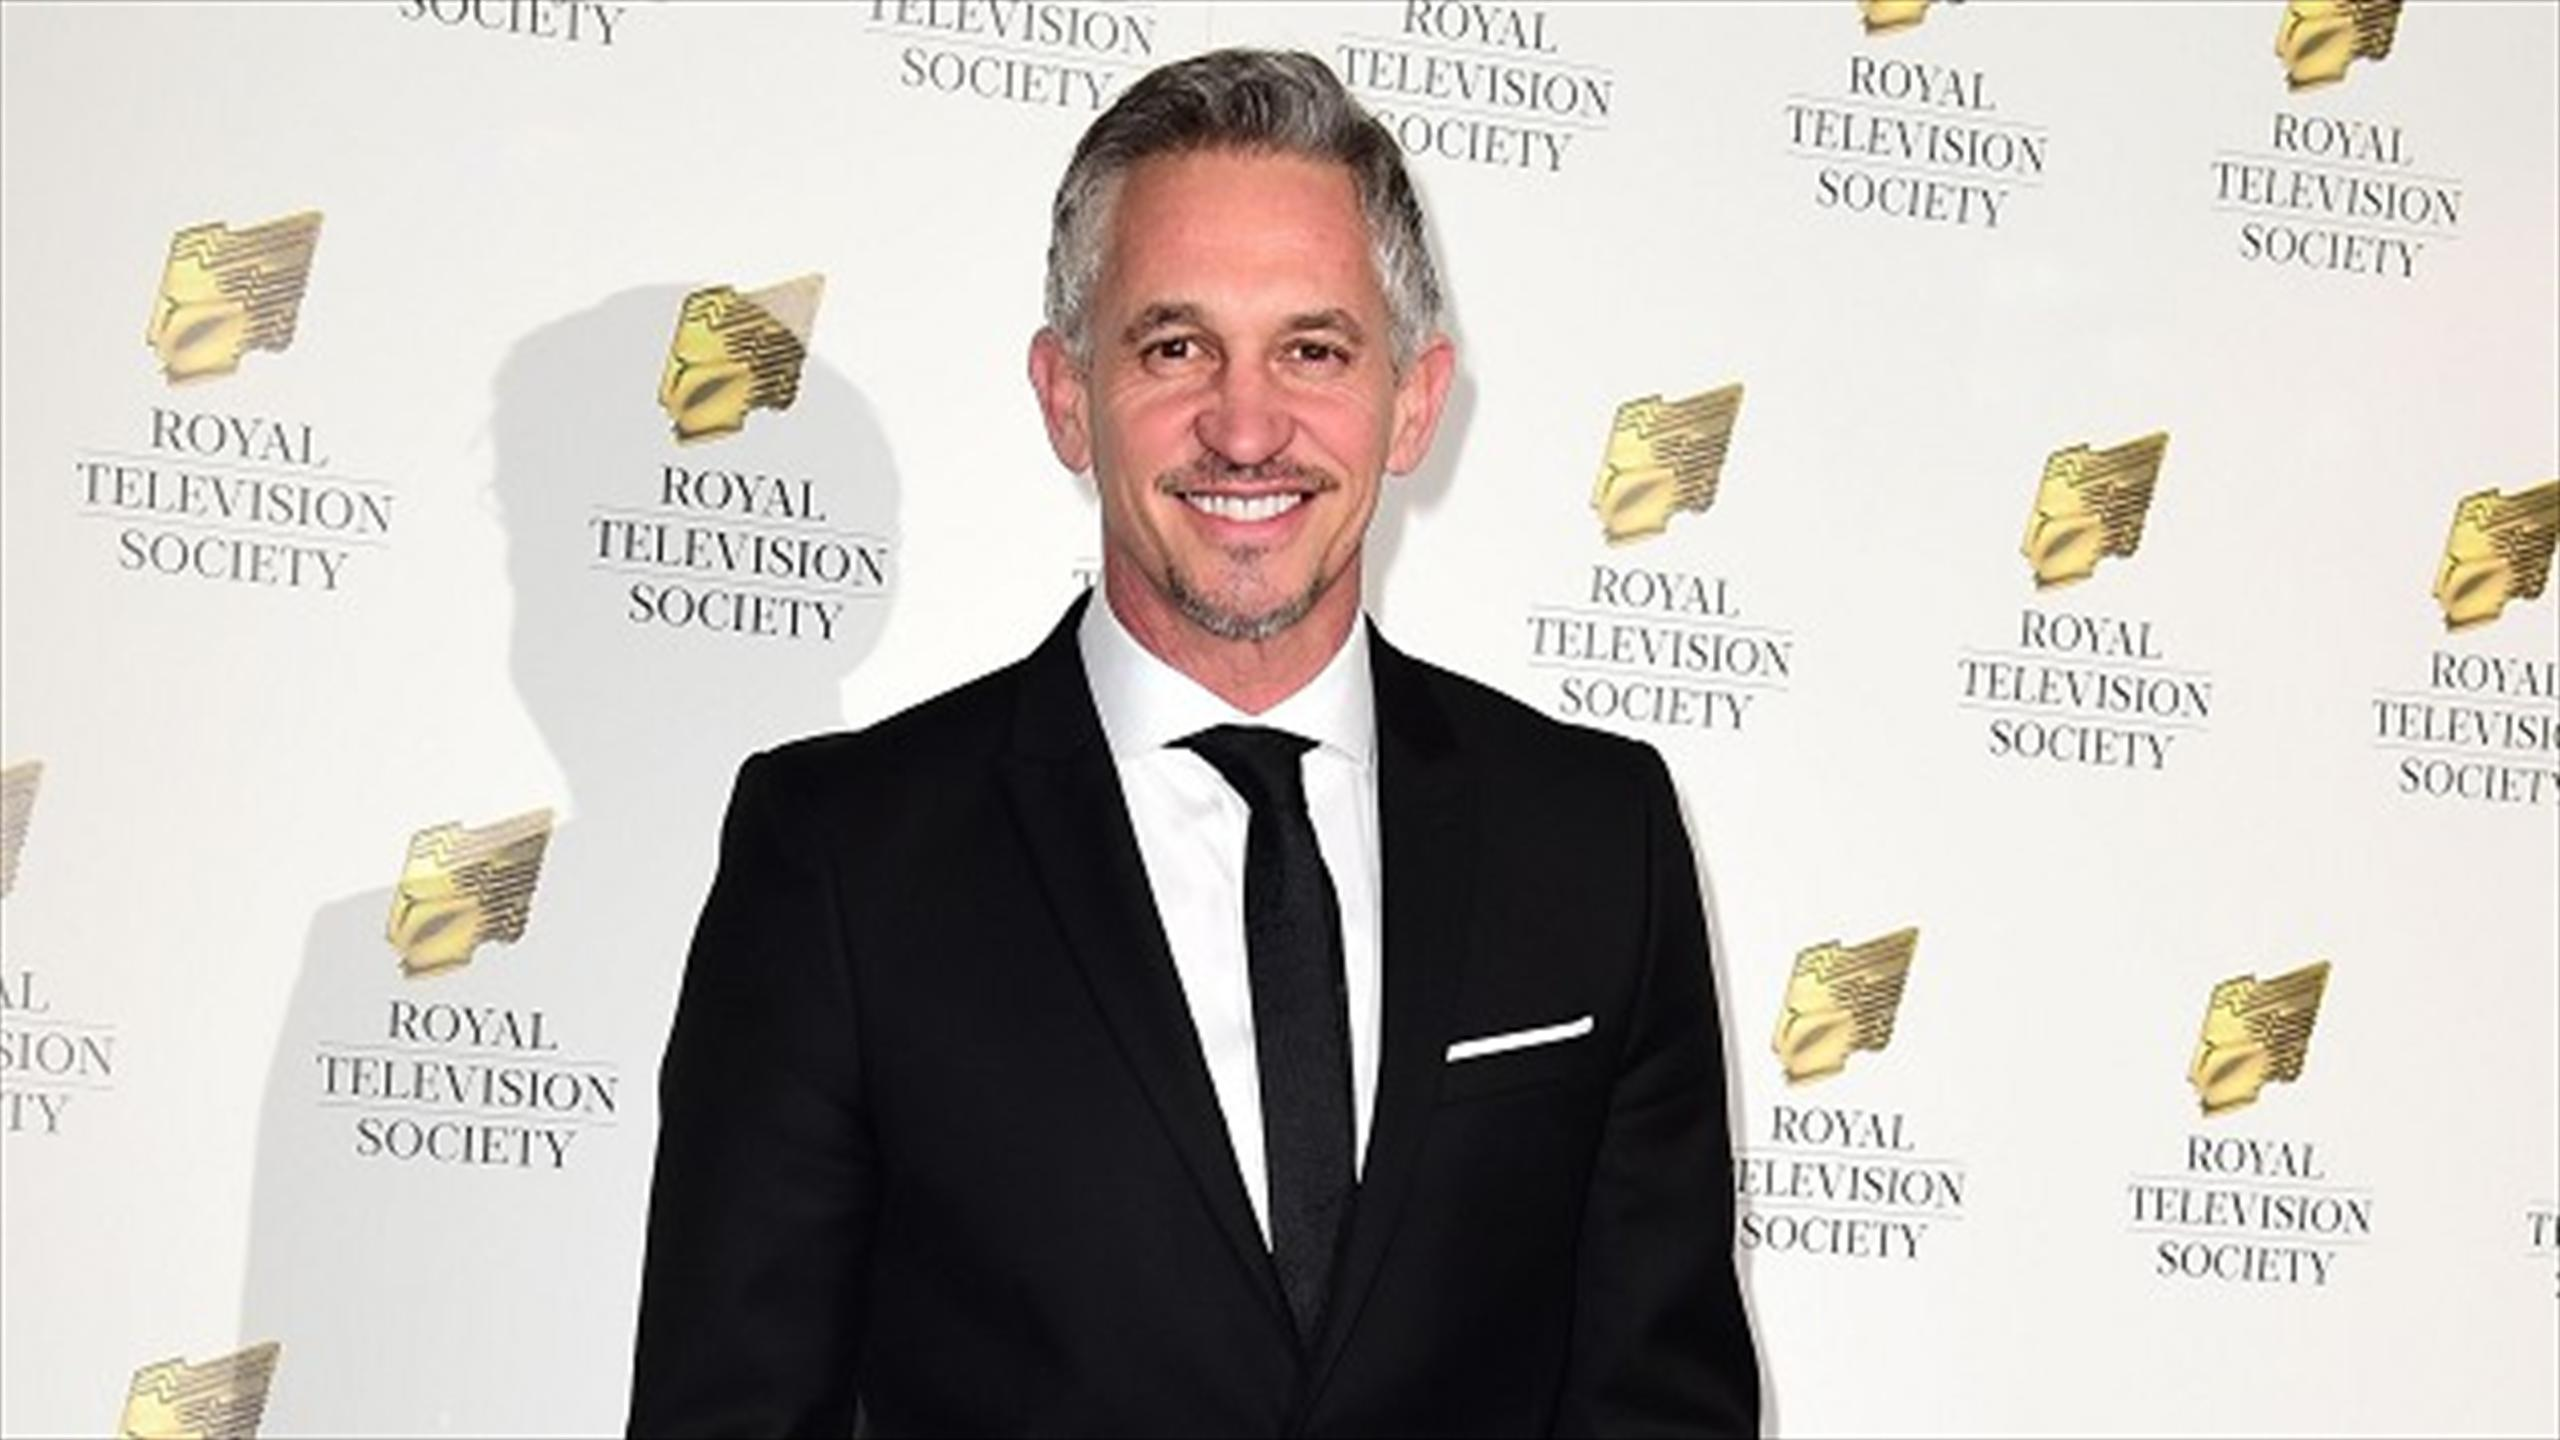 Gary Lineker has sampled Nigel Pearson's quick wit.